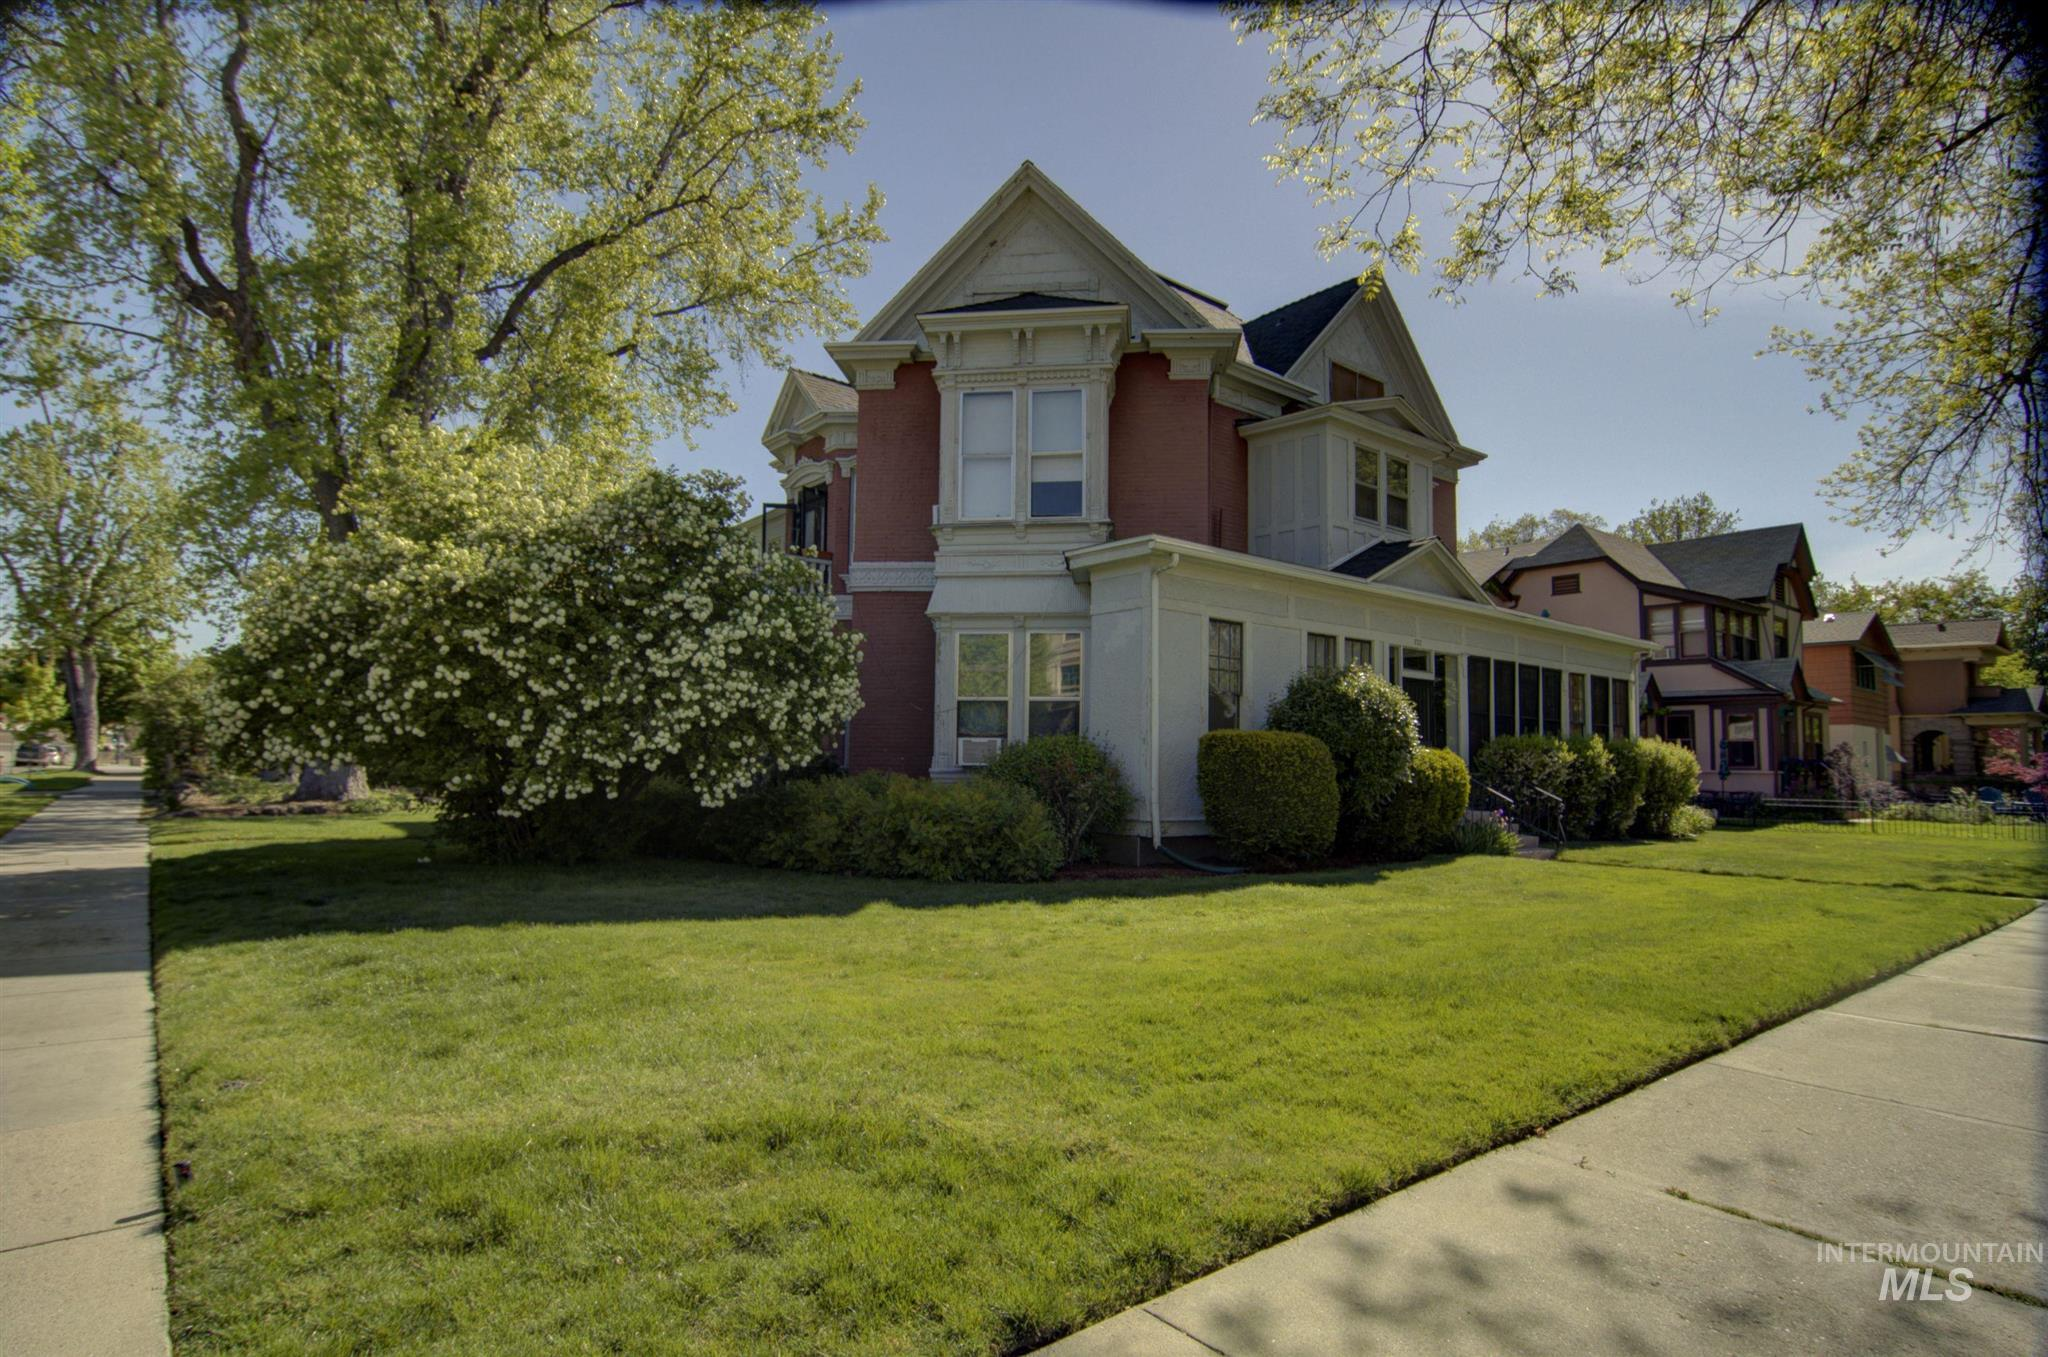 722 W Franklin St Property Photo - Boise, ID real estate listing